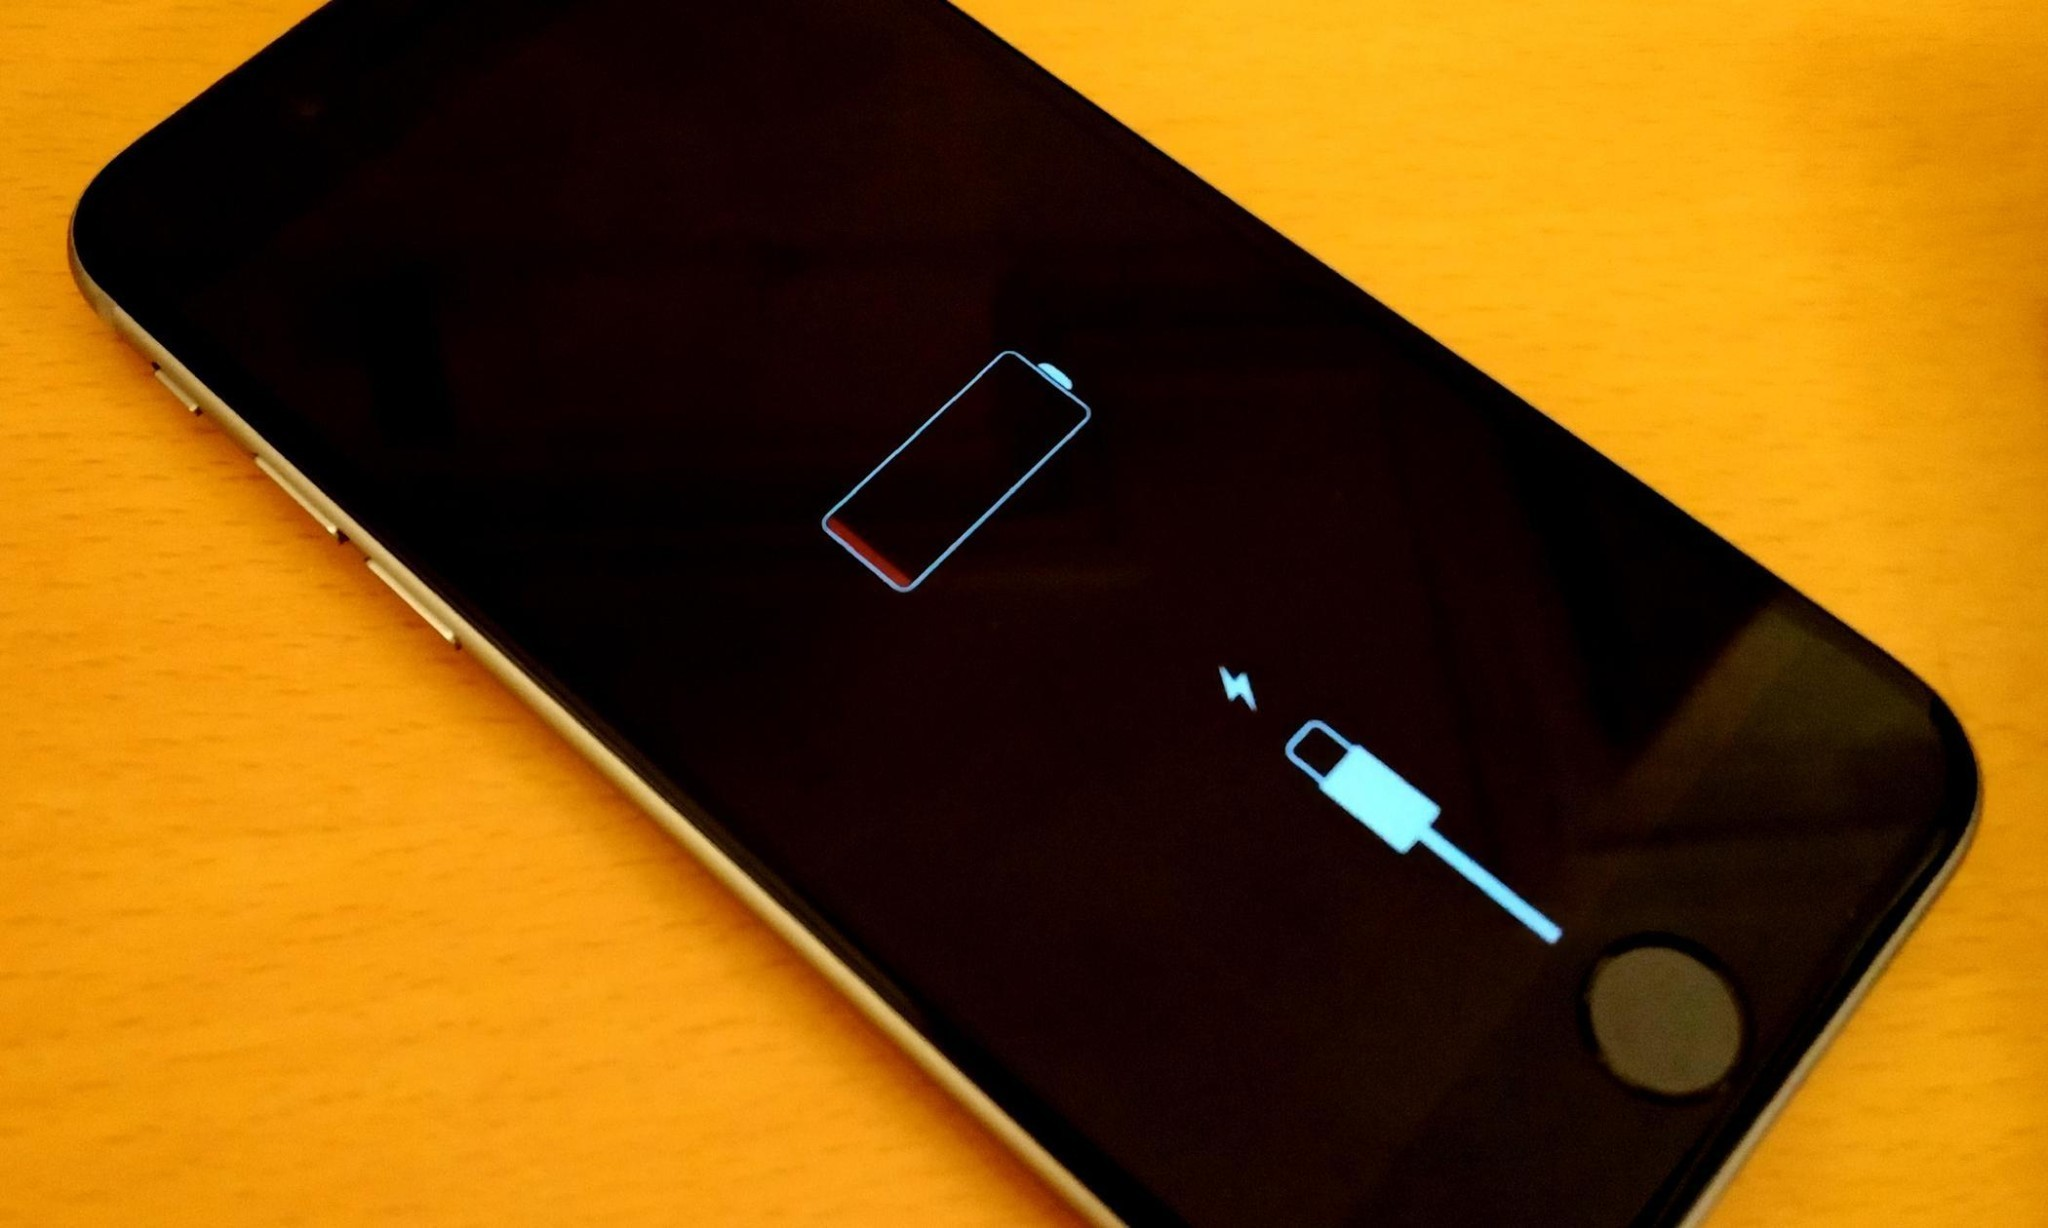 Uninstalling Facebook app saves up to 15% of iPhone battery life